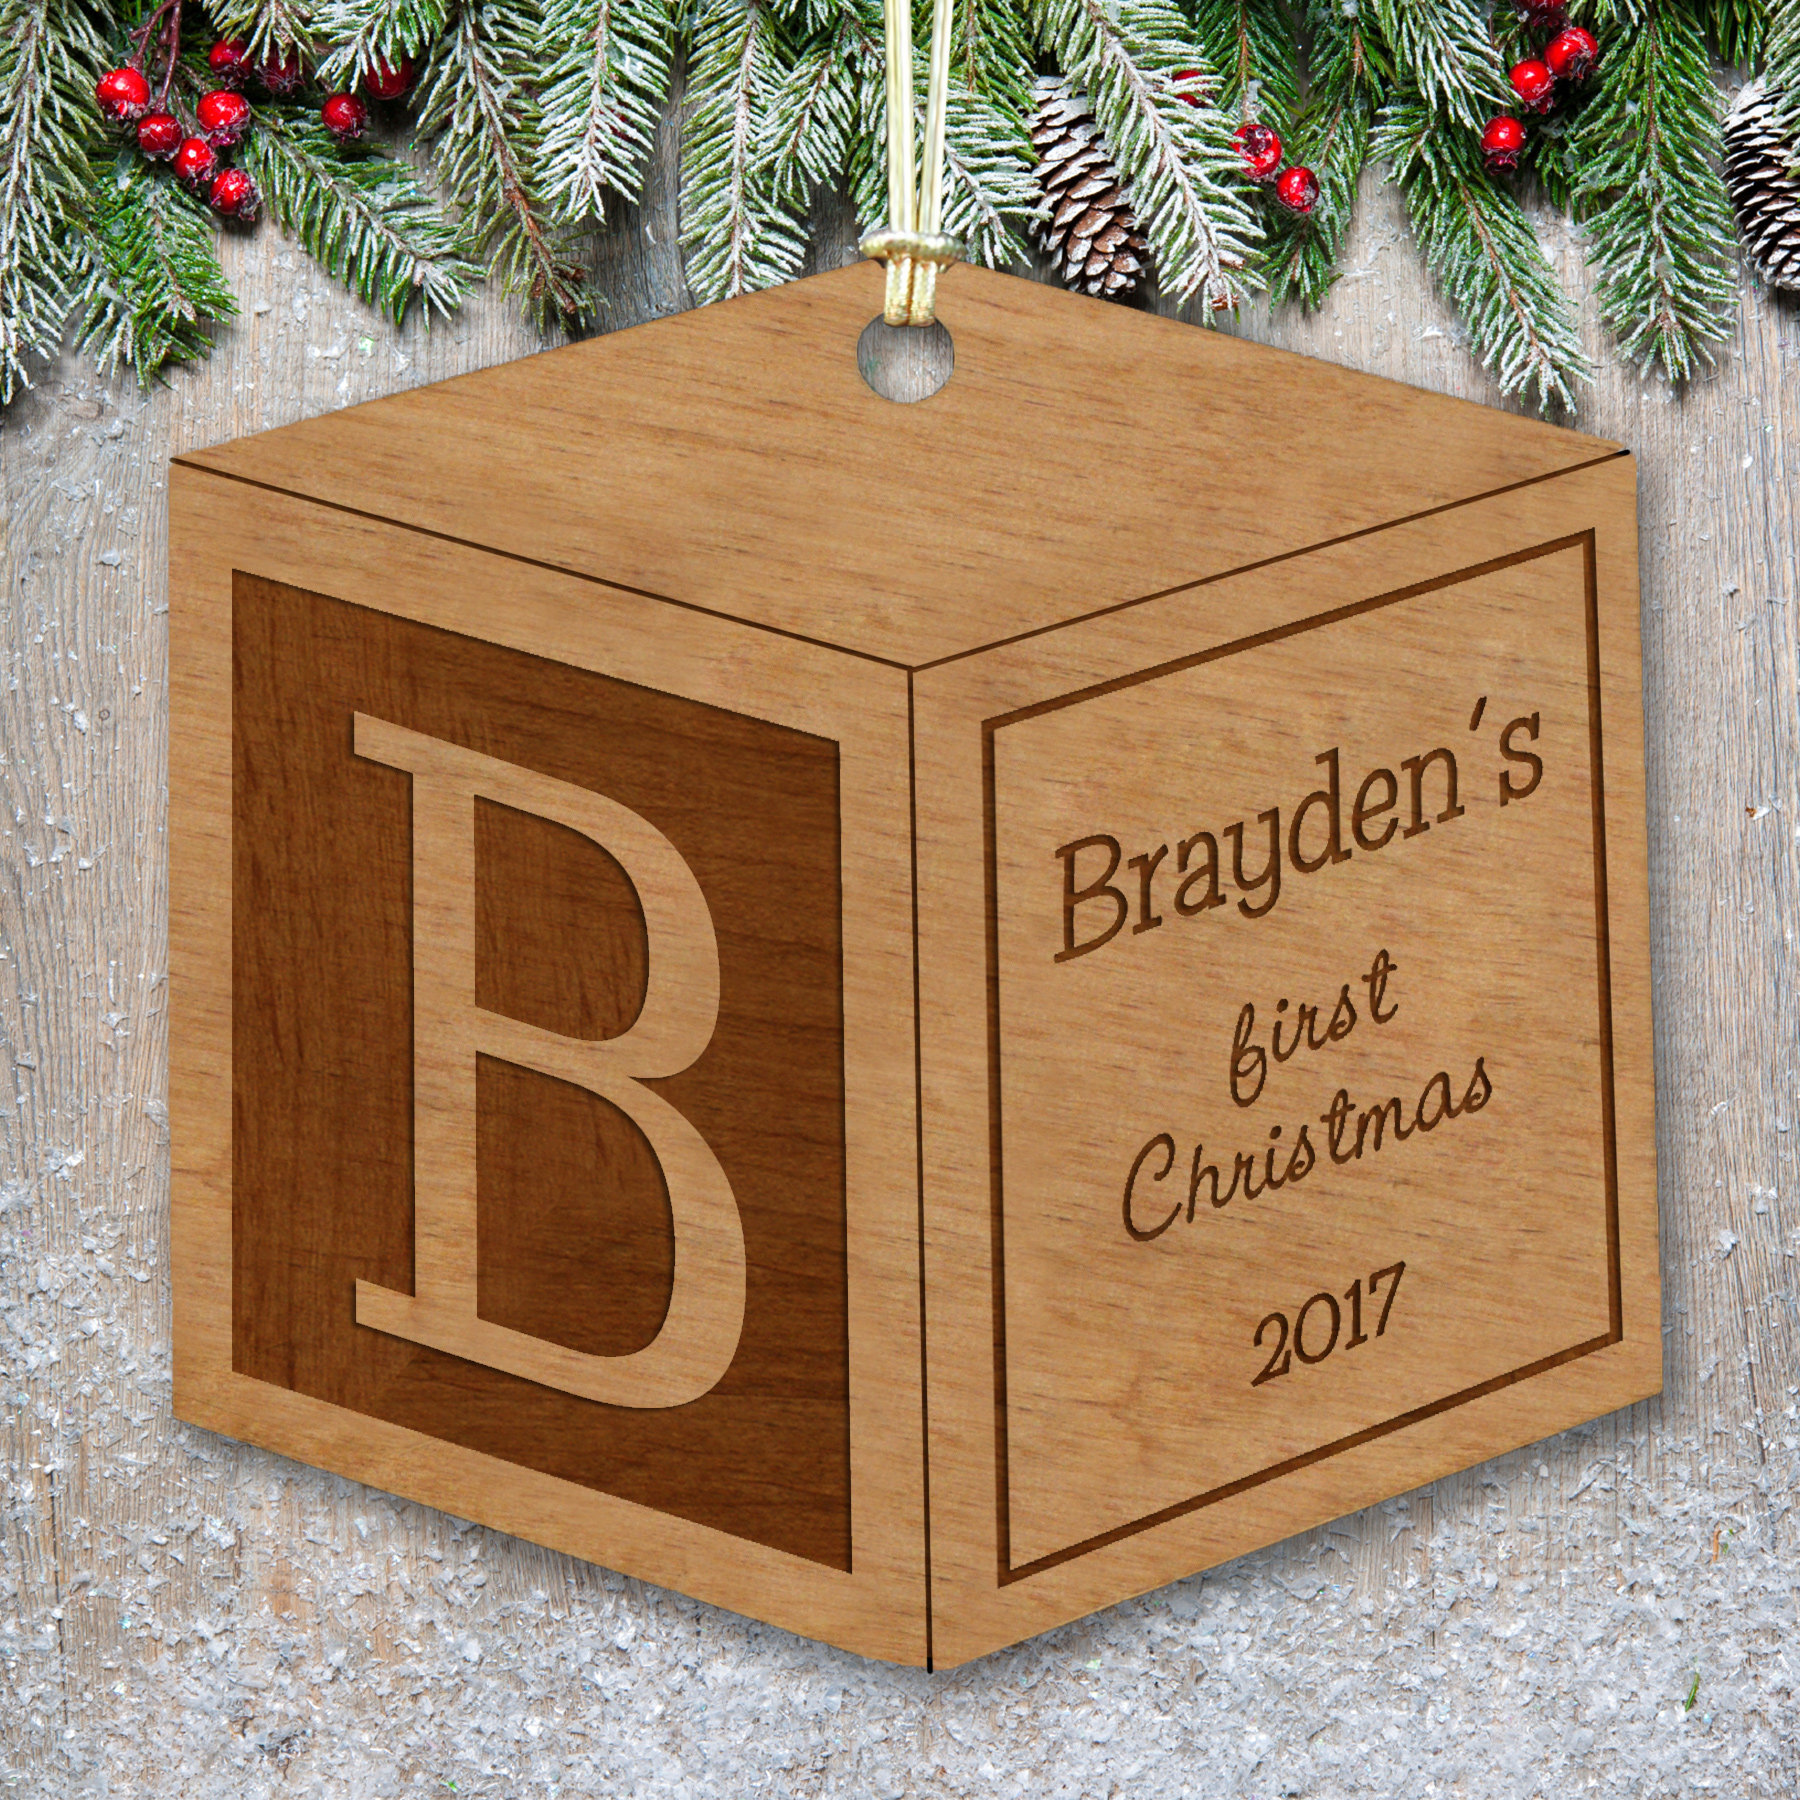 Engraved Wood Baby Block Ornament | Baby's First Christmas Ornaments